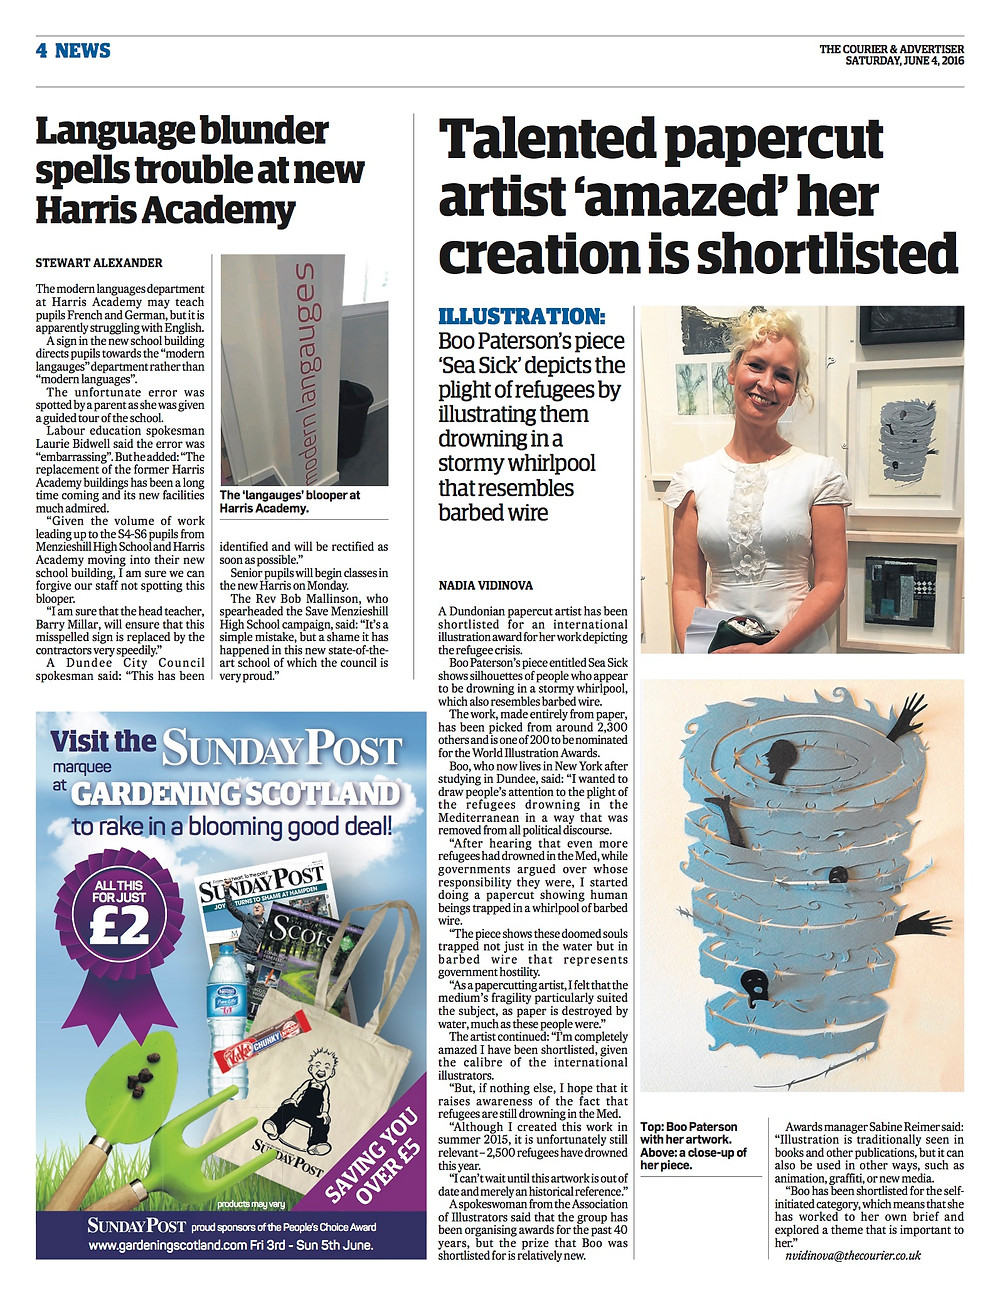 Coverage of shortlisting in The Courier